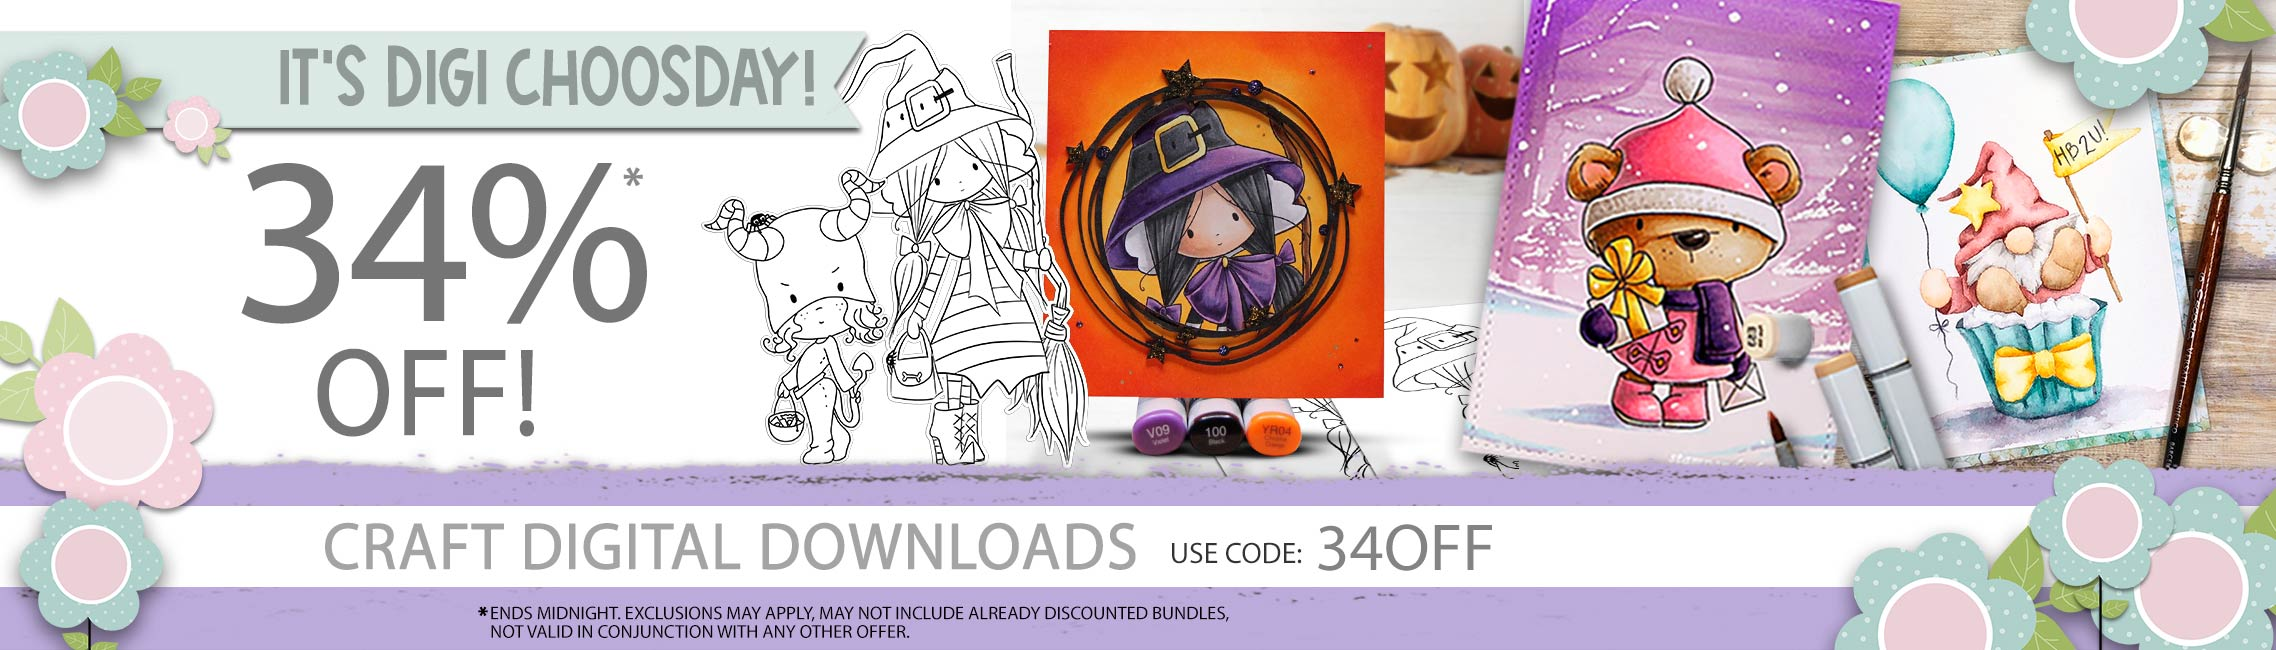 Save 34% on printable downloads in today's sale - ends midnight use code 34OFF